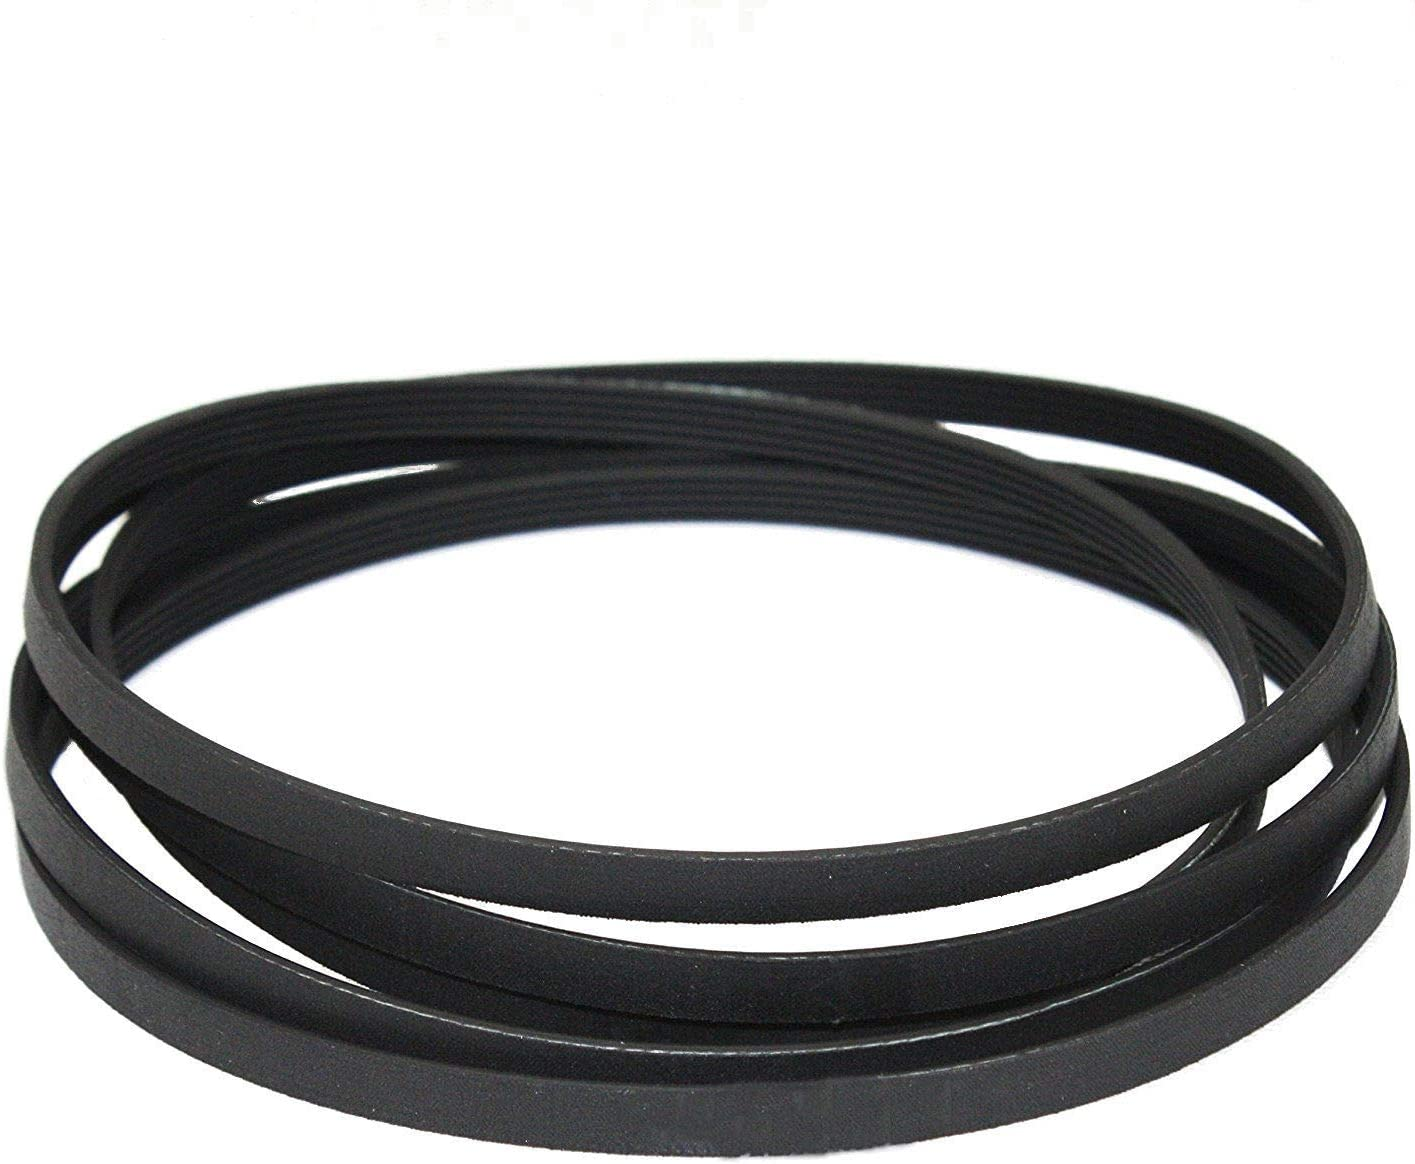 Replace 312959 - Drum Belt for Maytag Dryer